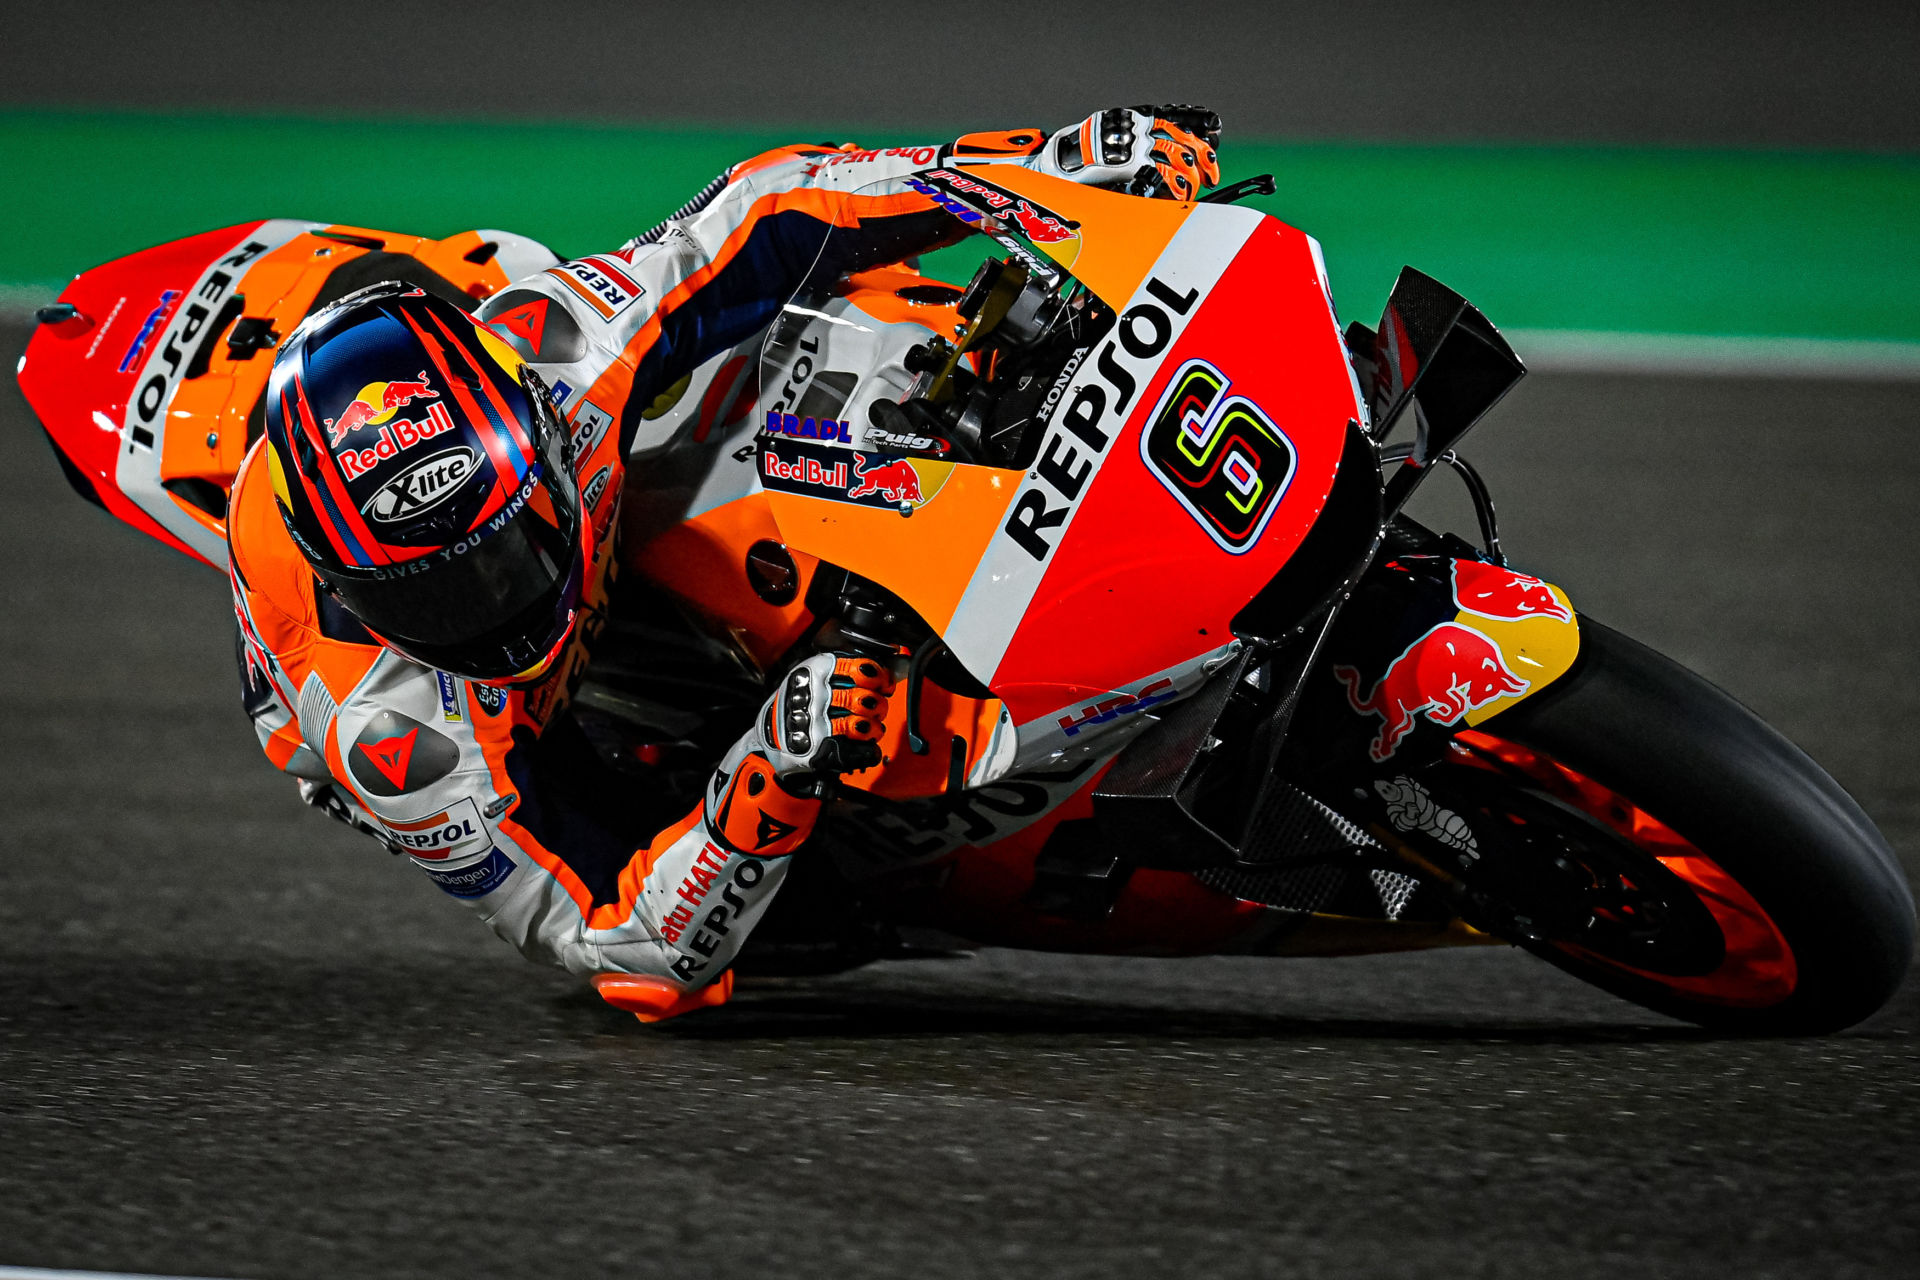 Stefan Bradl (6) was the quickest rider during the MotoGP shakedown test Friday in Qatar. Photo courtesy Dorna.